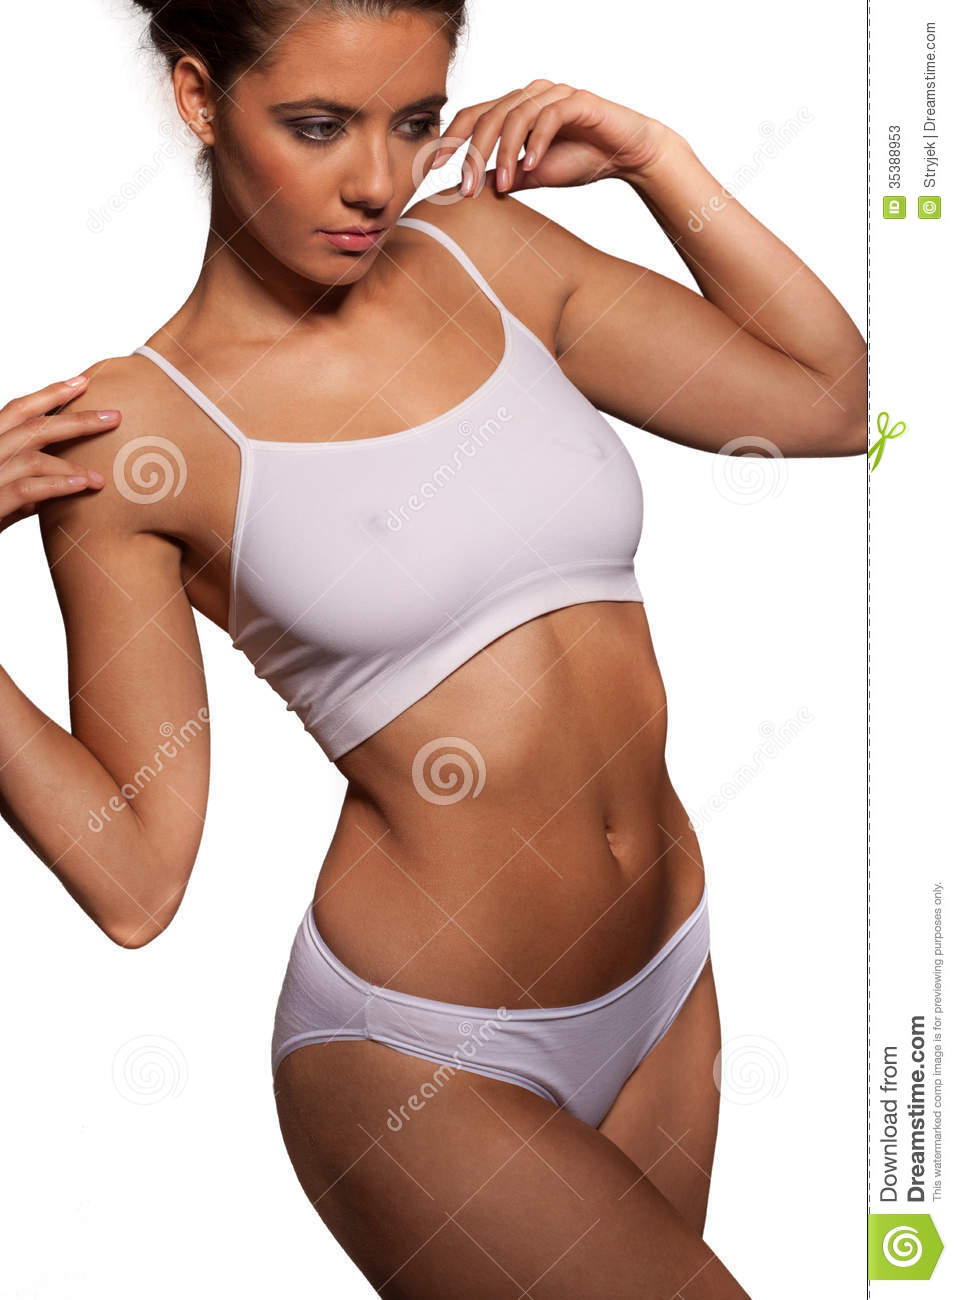 Think, what wife posing bra and panties confirm